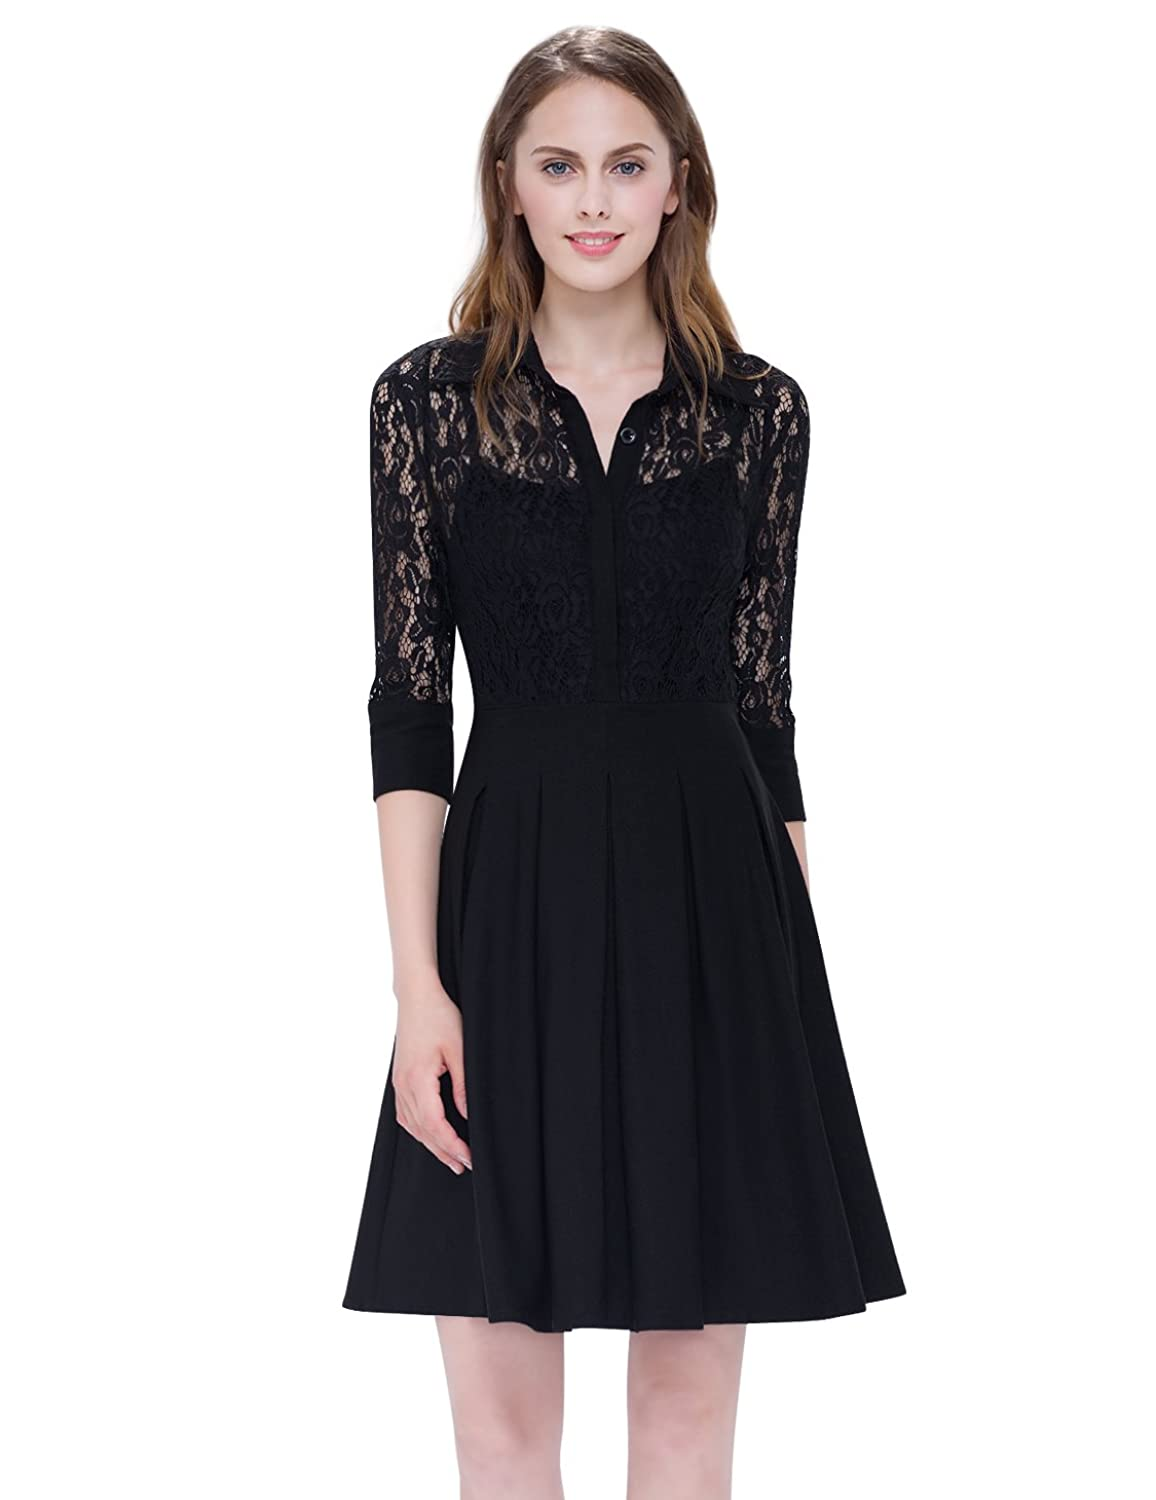 f5d3c8c7df Top 10 wholesale Cute Everyday Dresses - Chinabrands.com